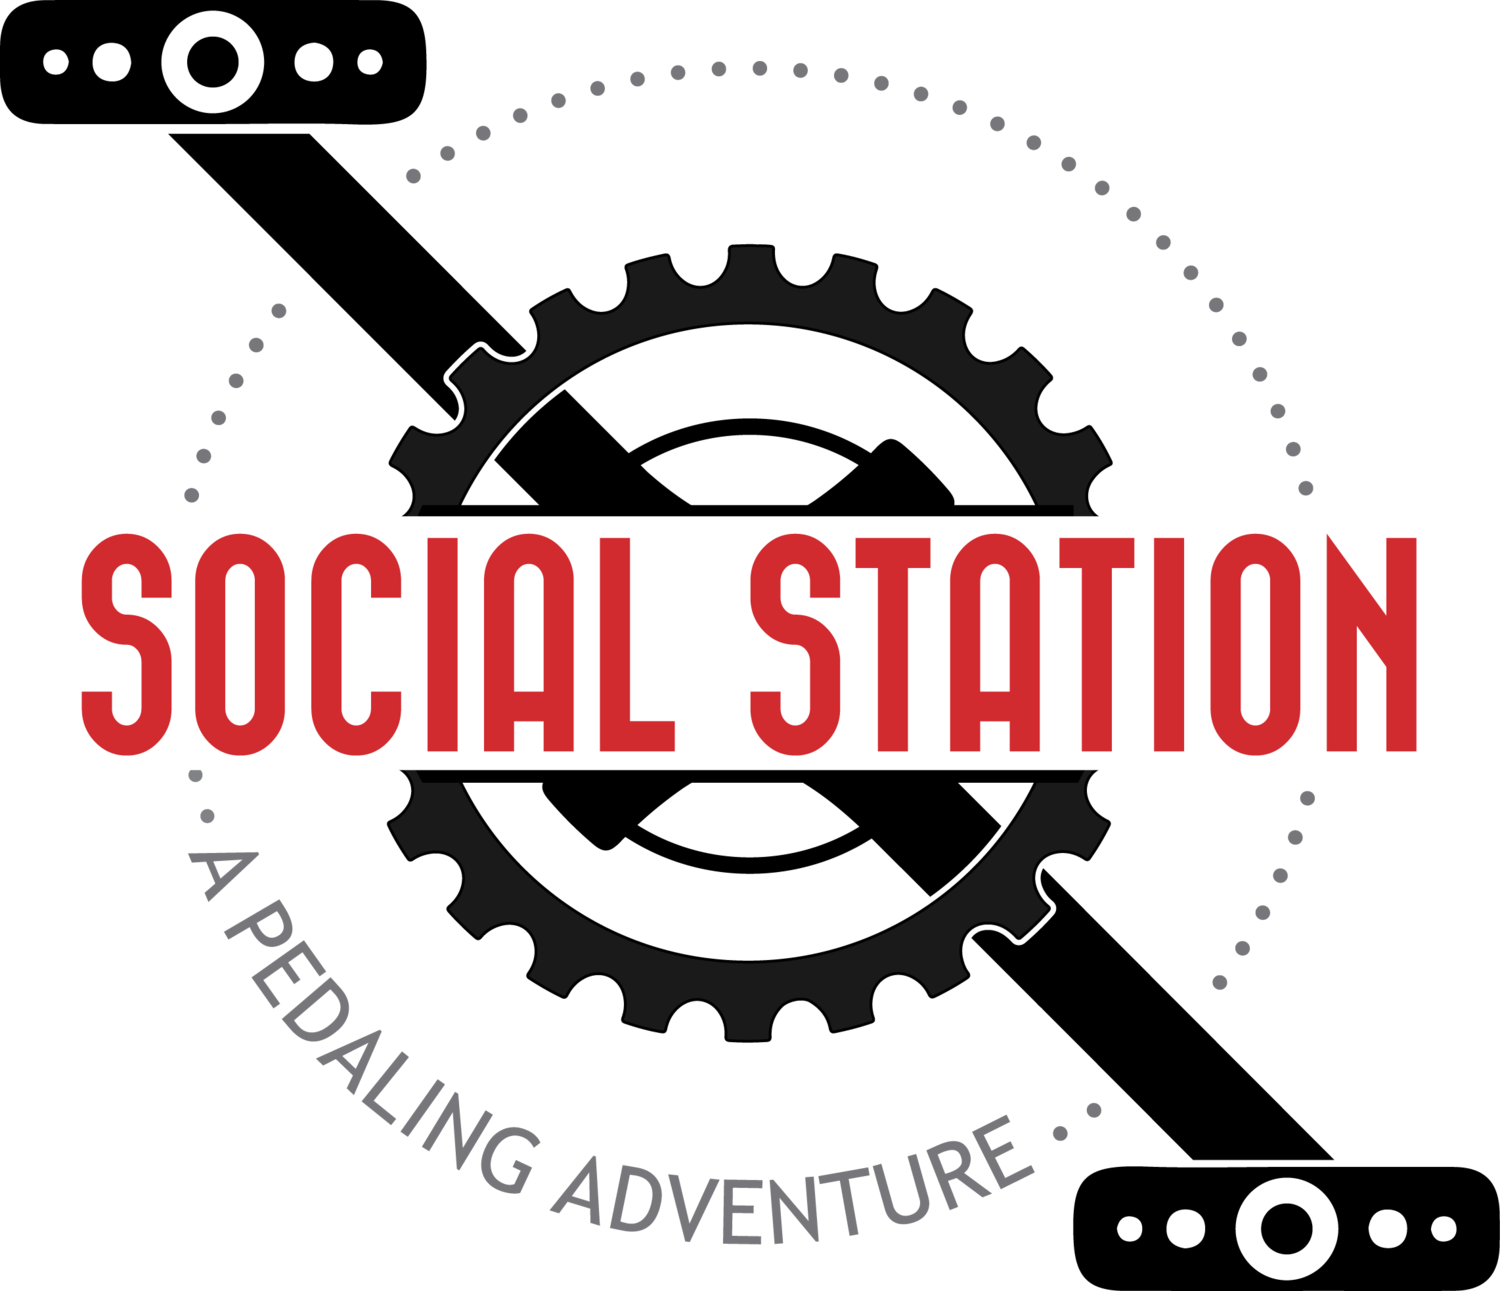 The social station pedal. Clipart beer pub crawl